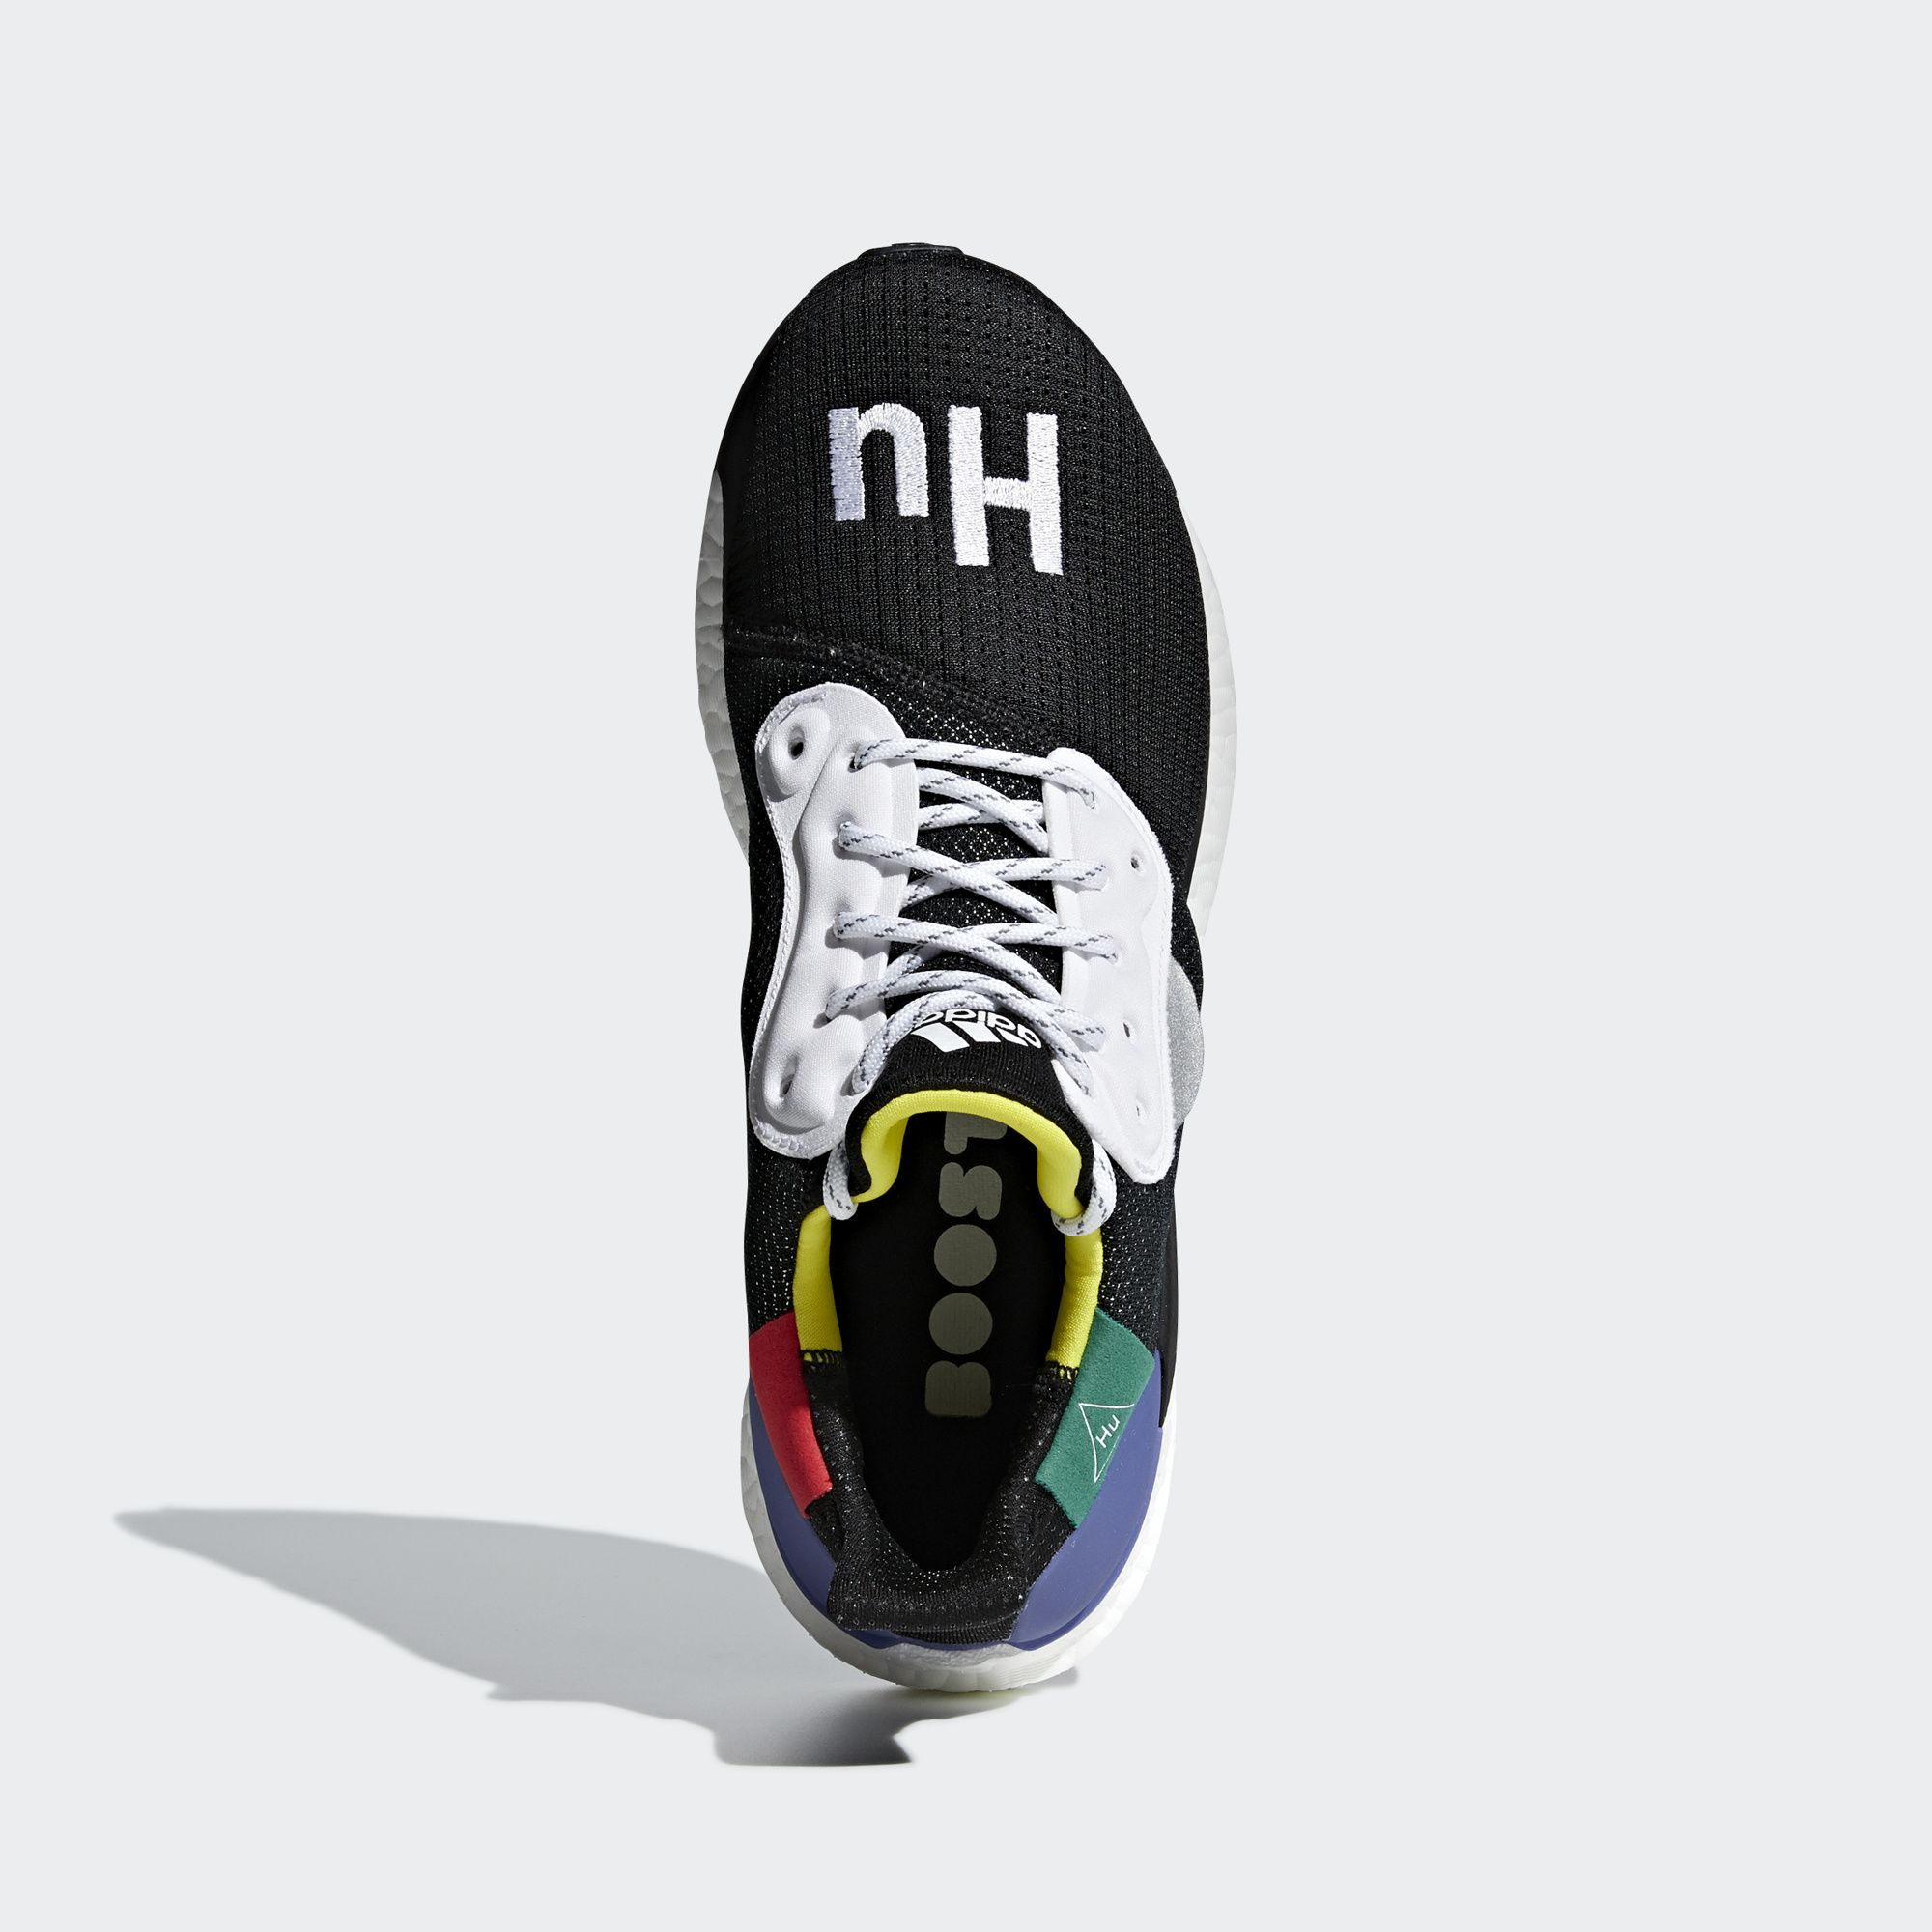 01-adidas-pharrell-williams-hu-solar-glide-00-black-bb8041